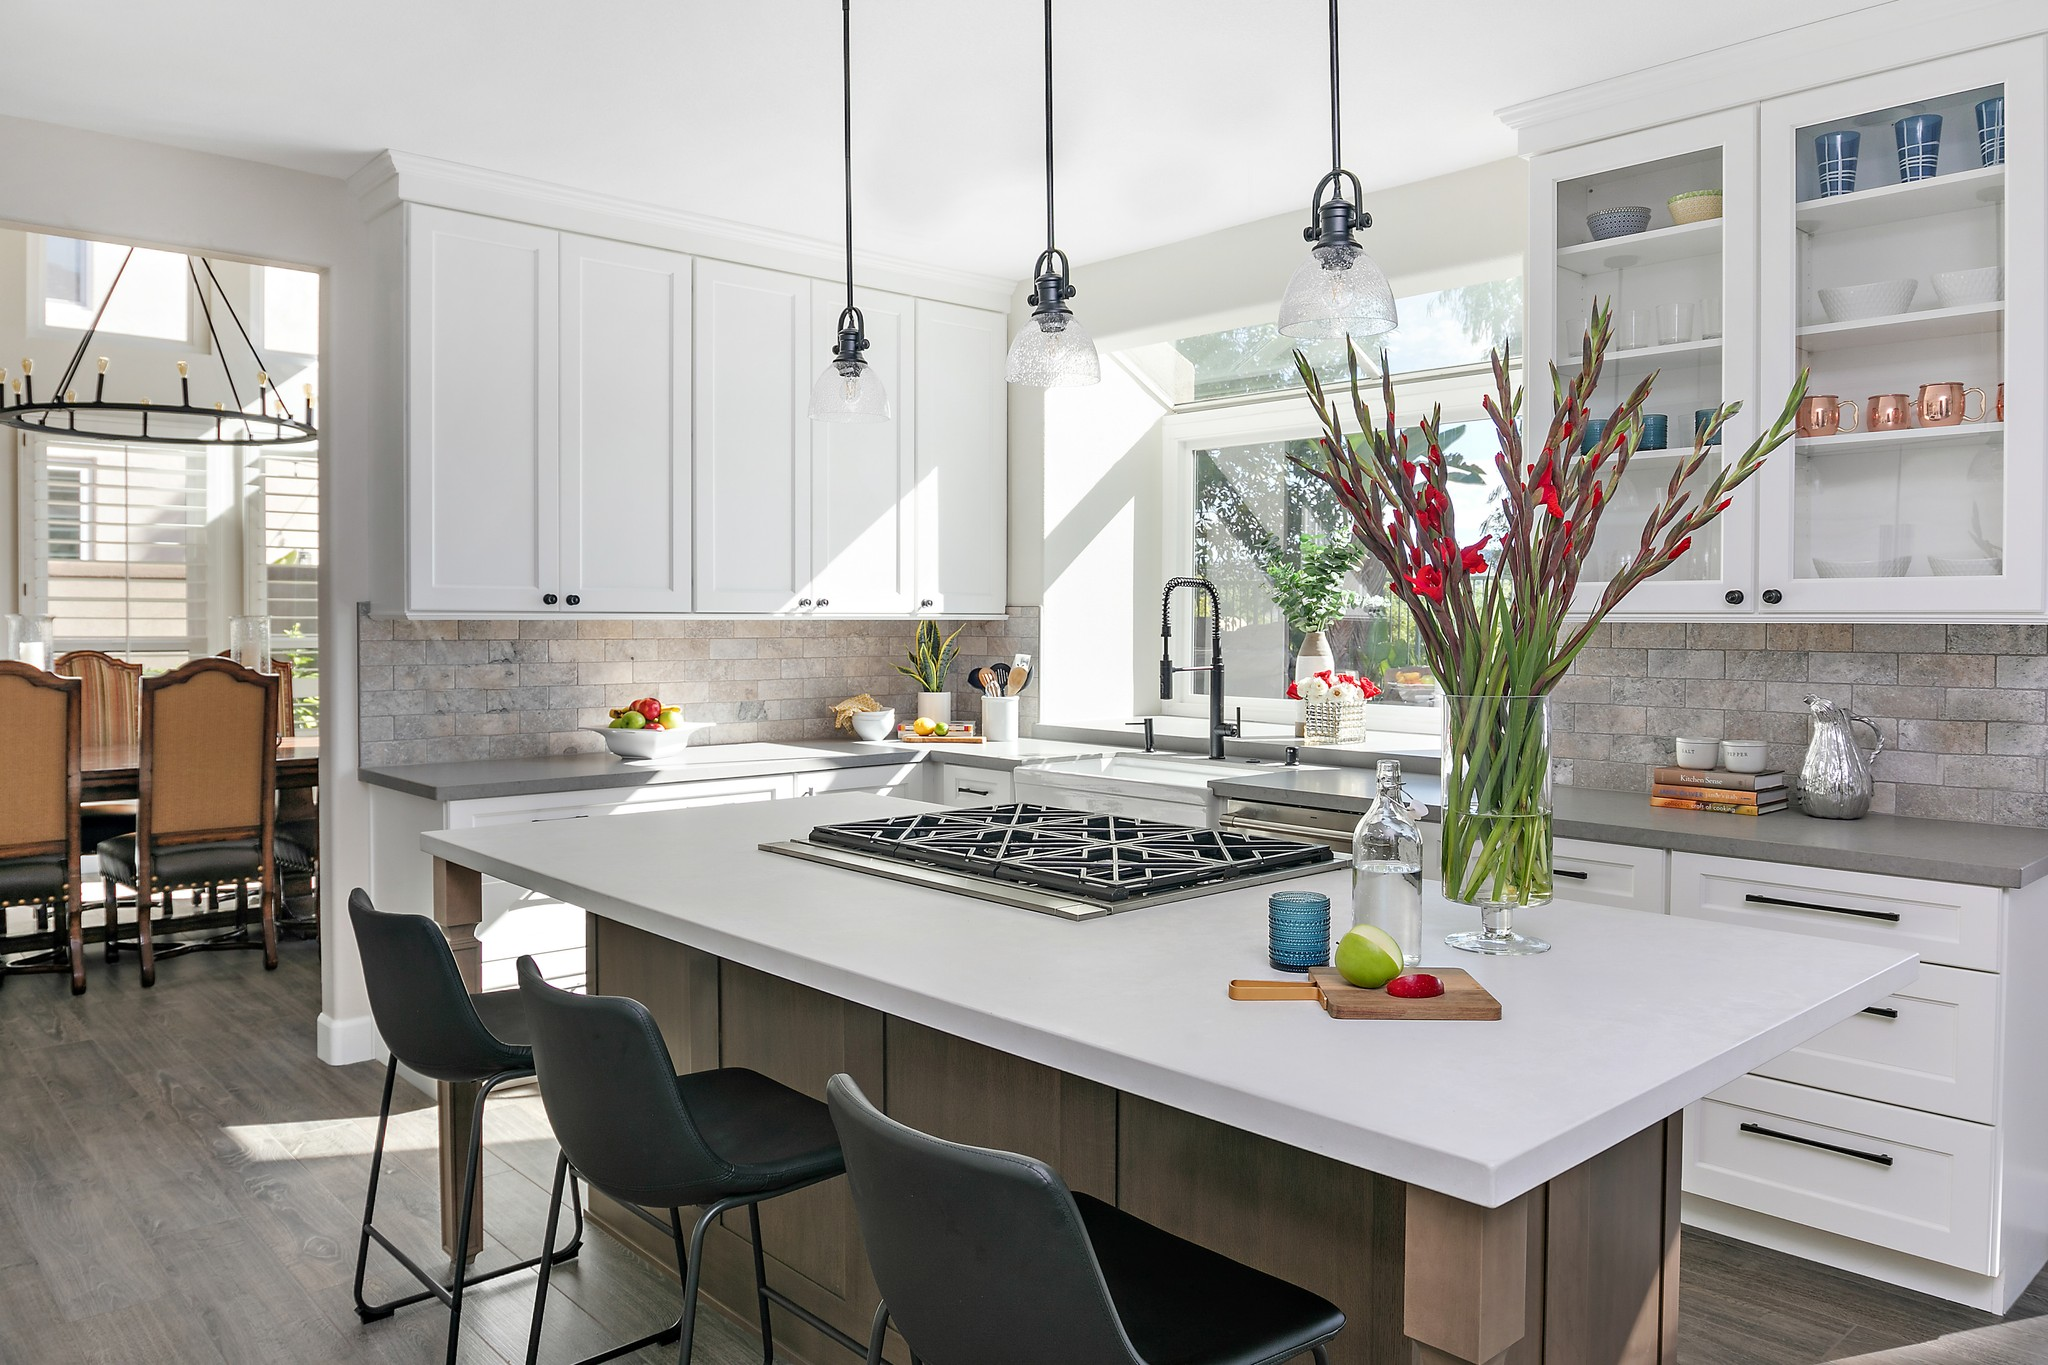 San-Juan-Capistrano-kitchen-island-renovation